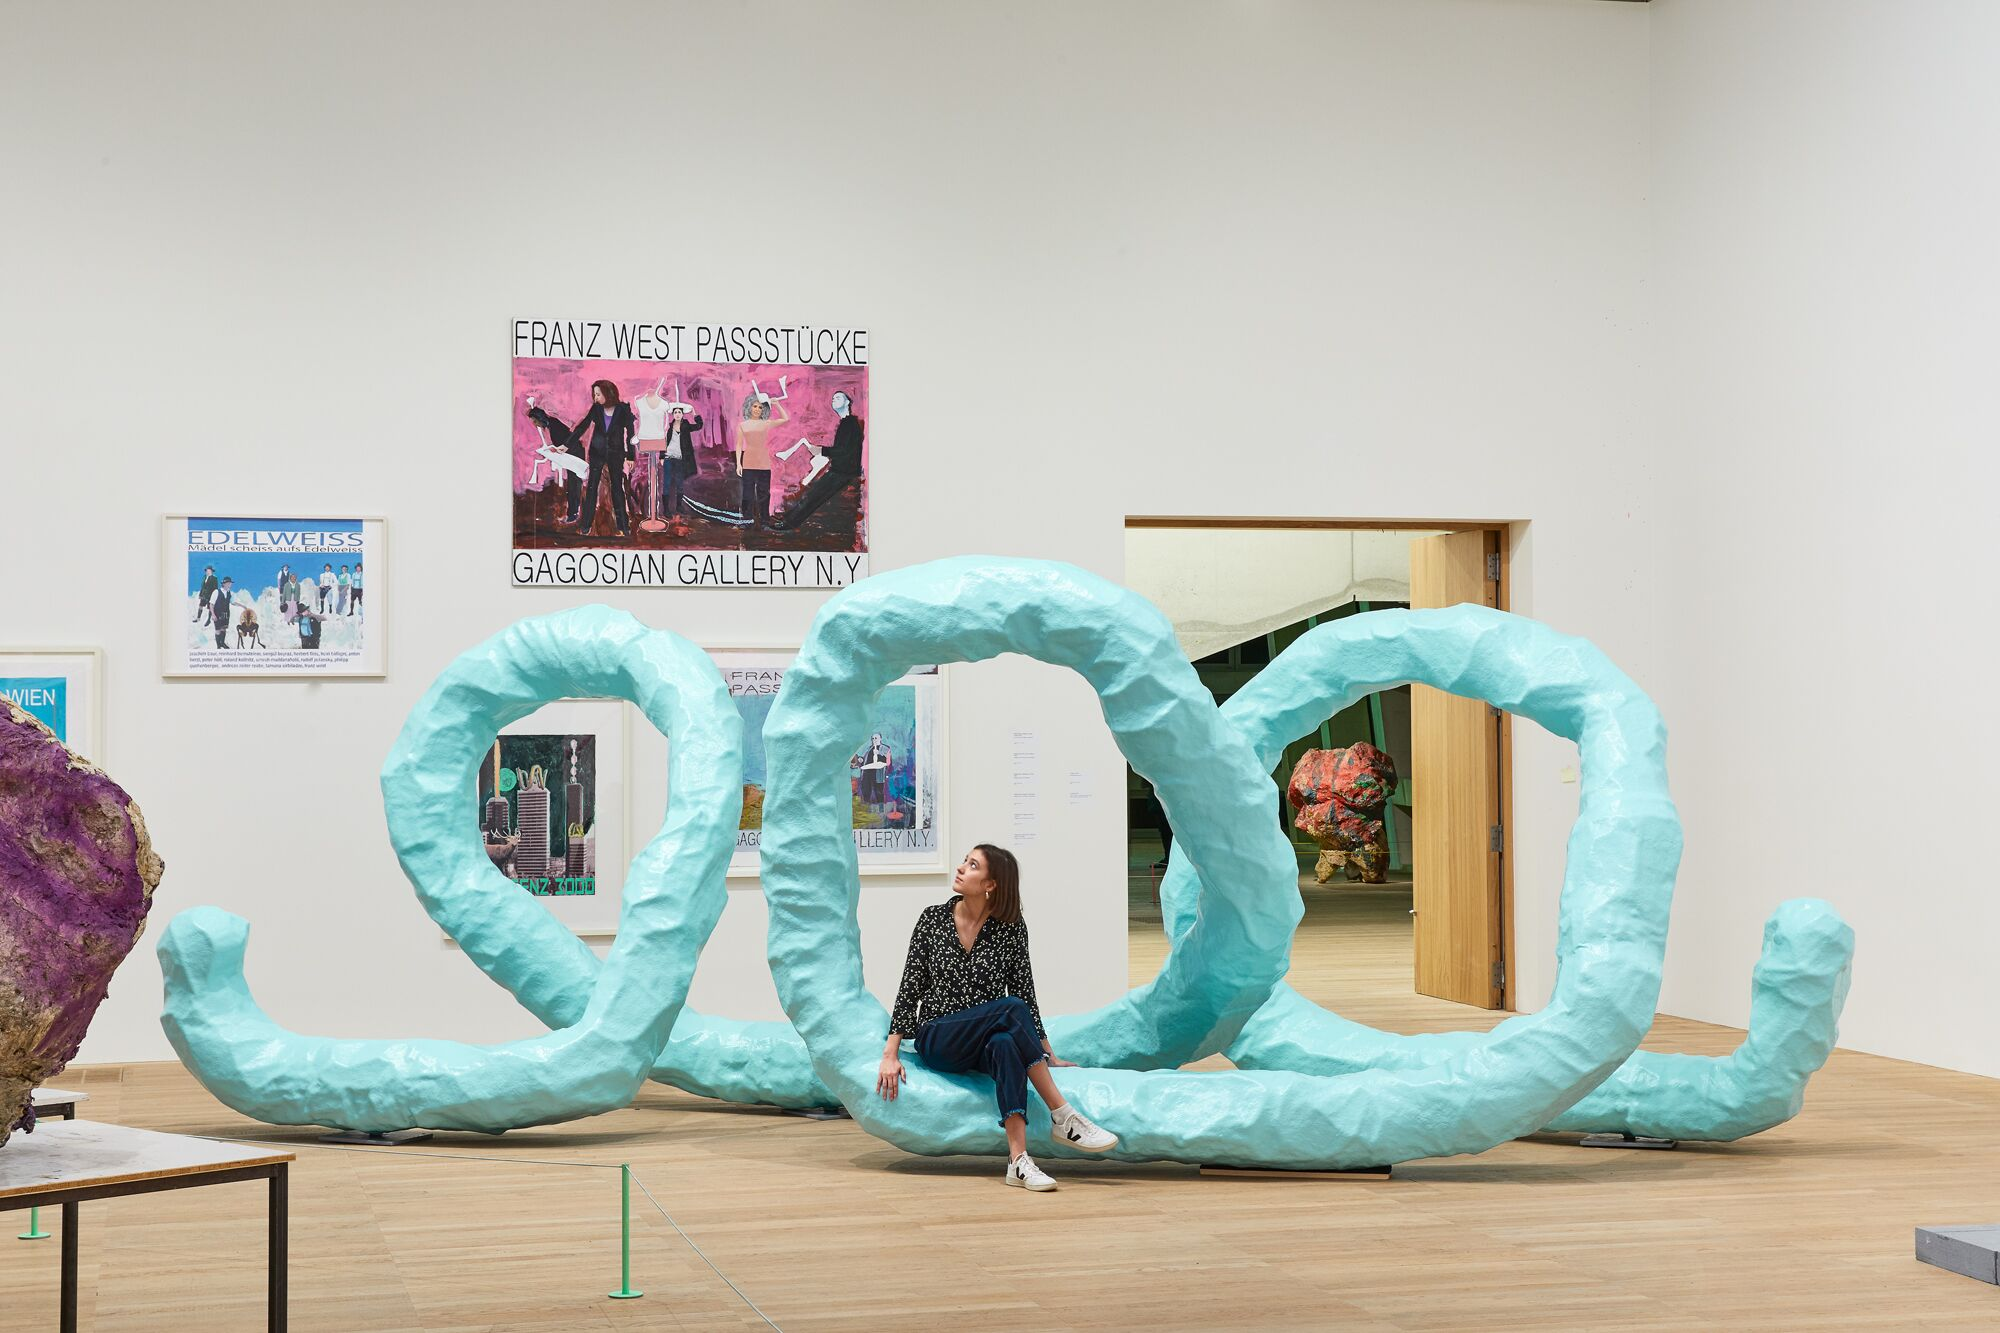 Franz West, artista irreverente y punk